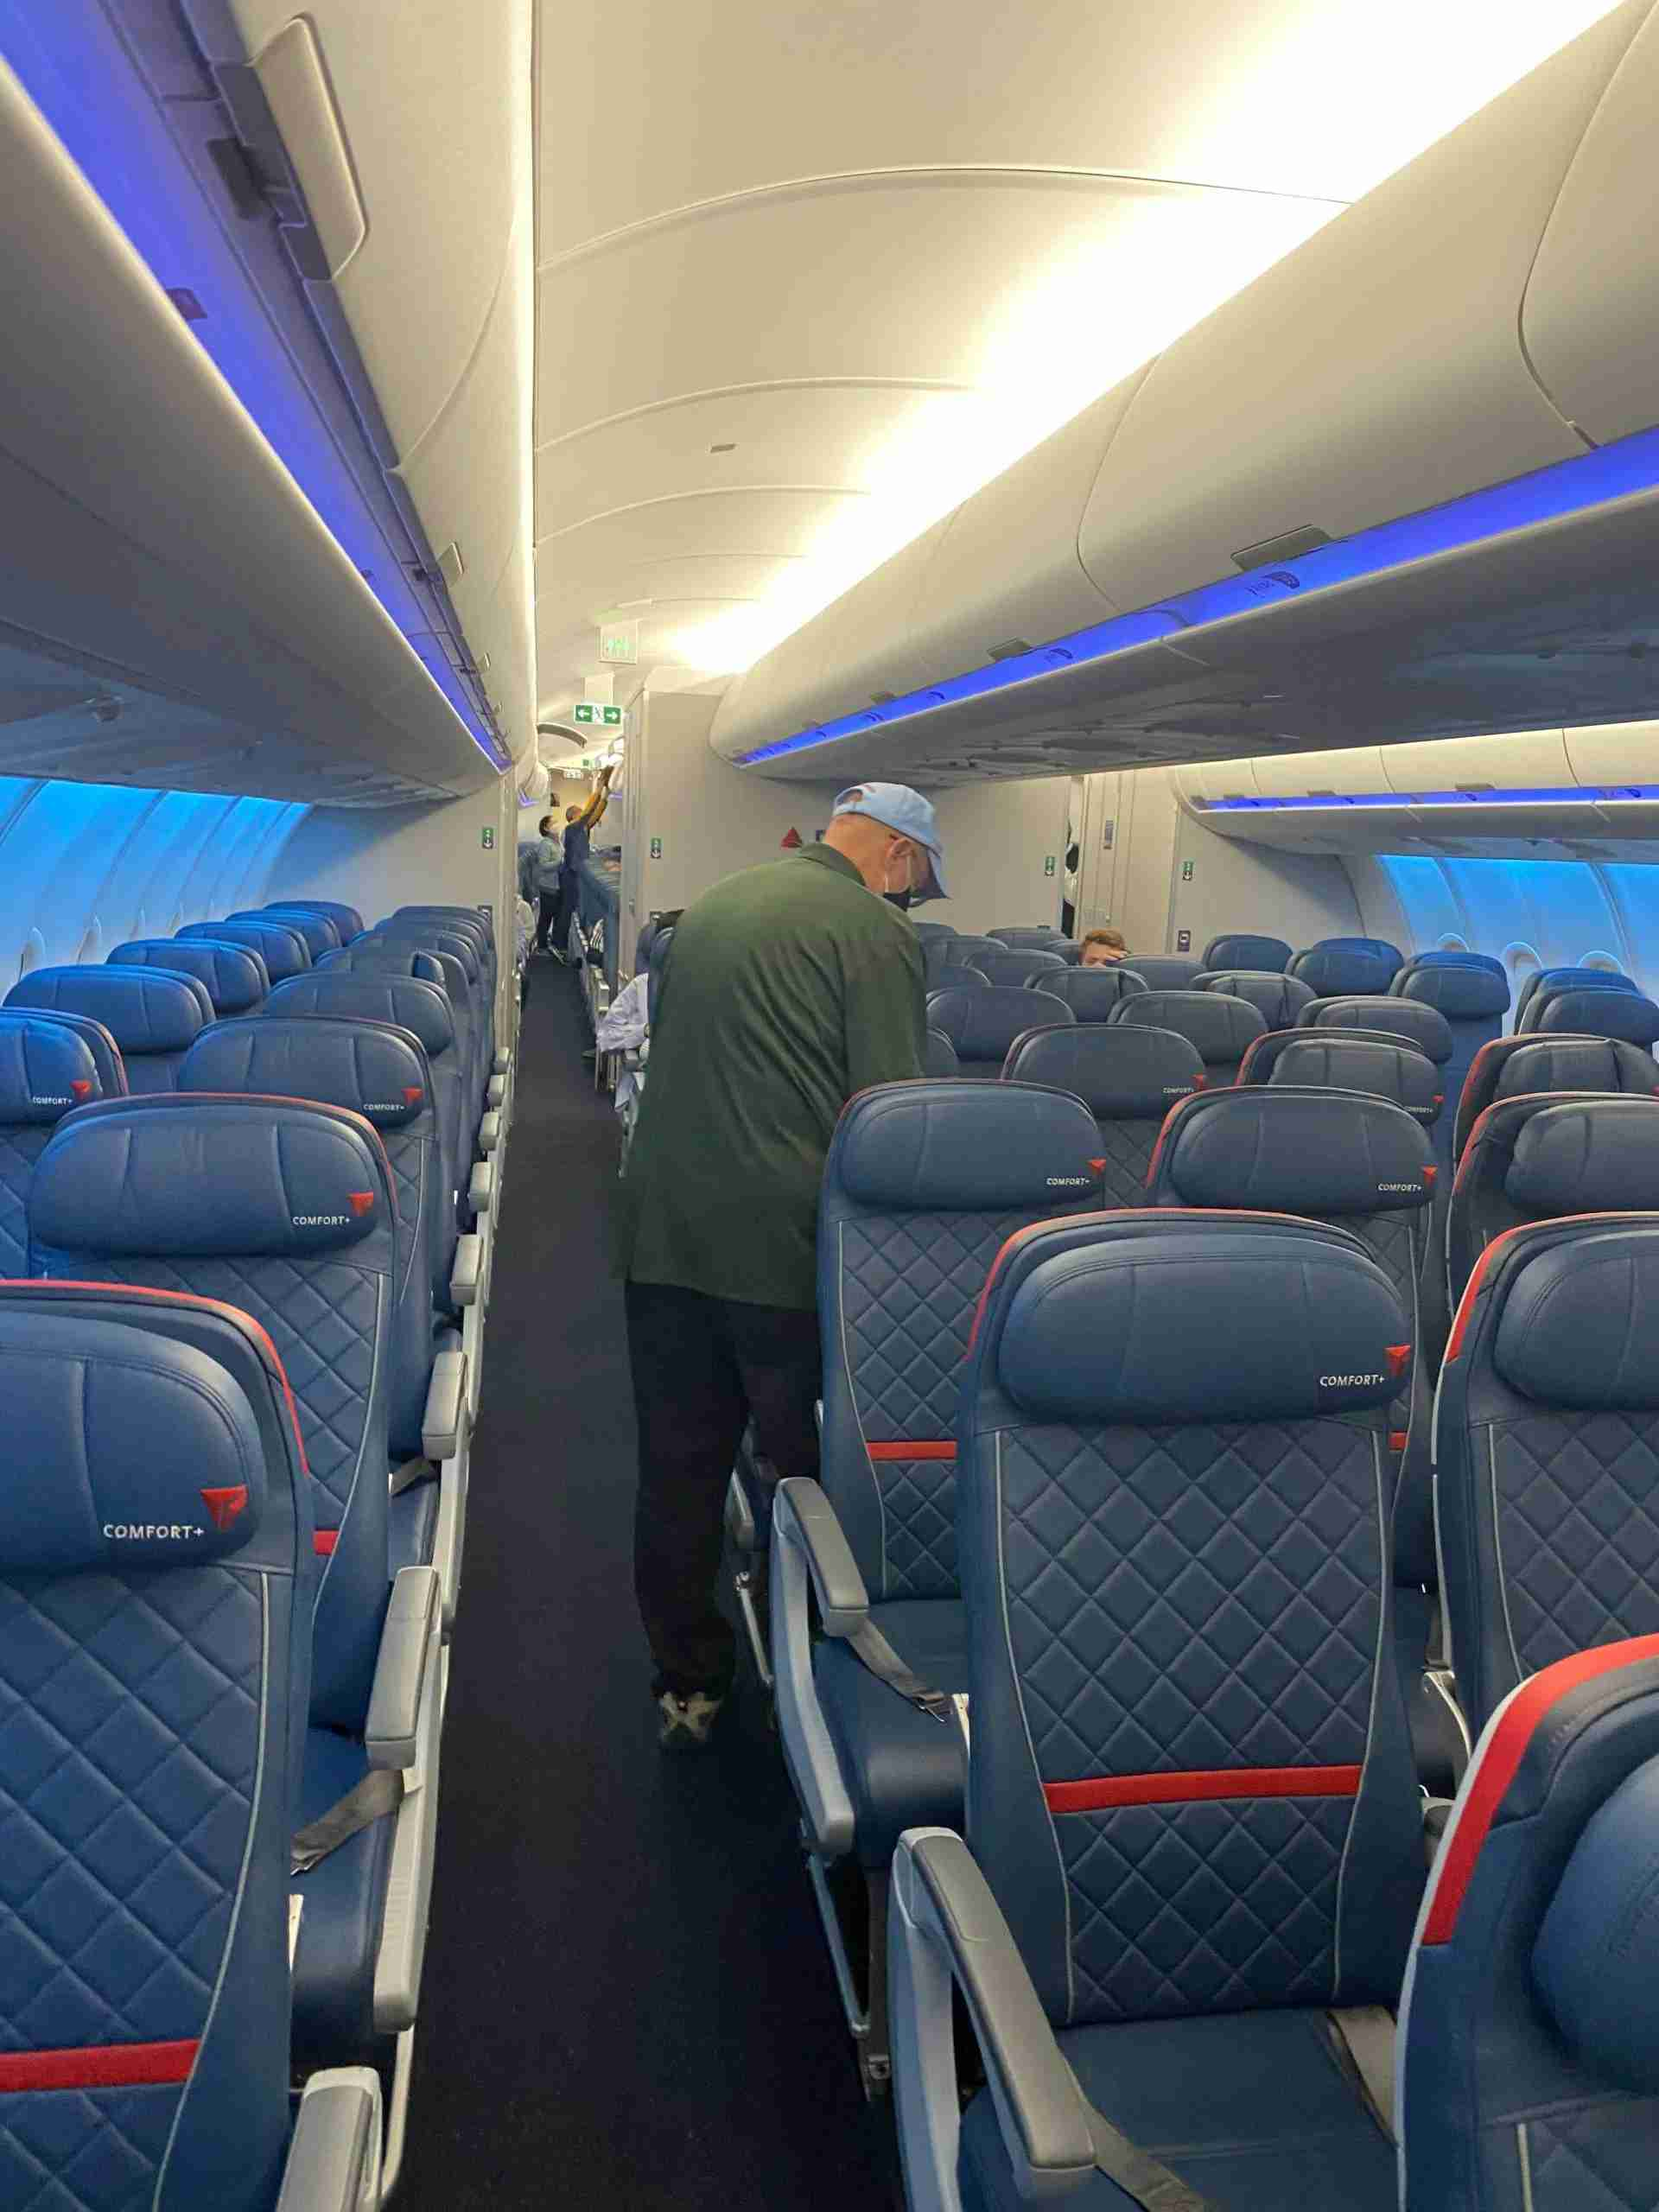 International Comfort+ cabin for Delta during pandemic